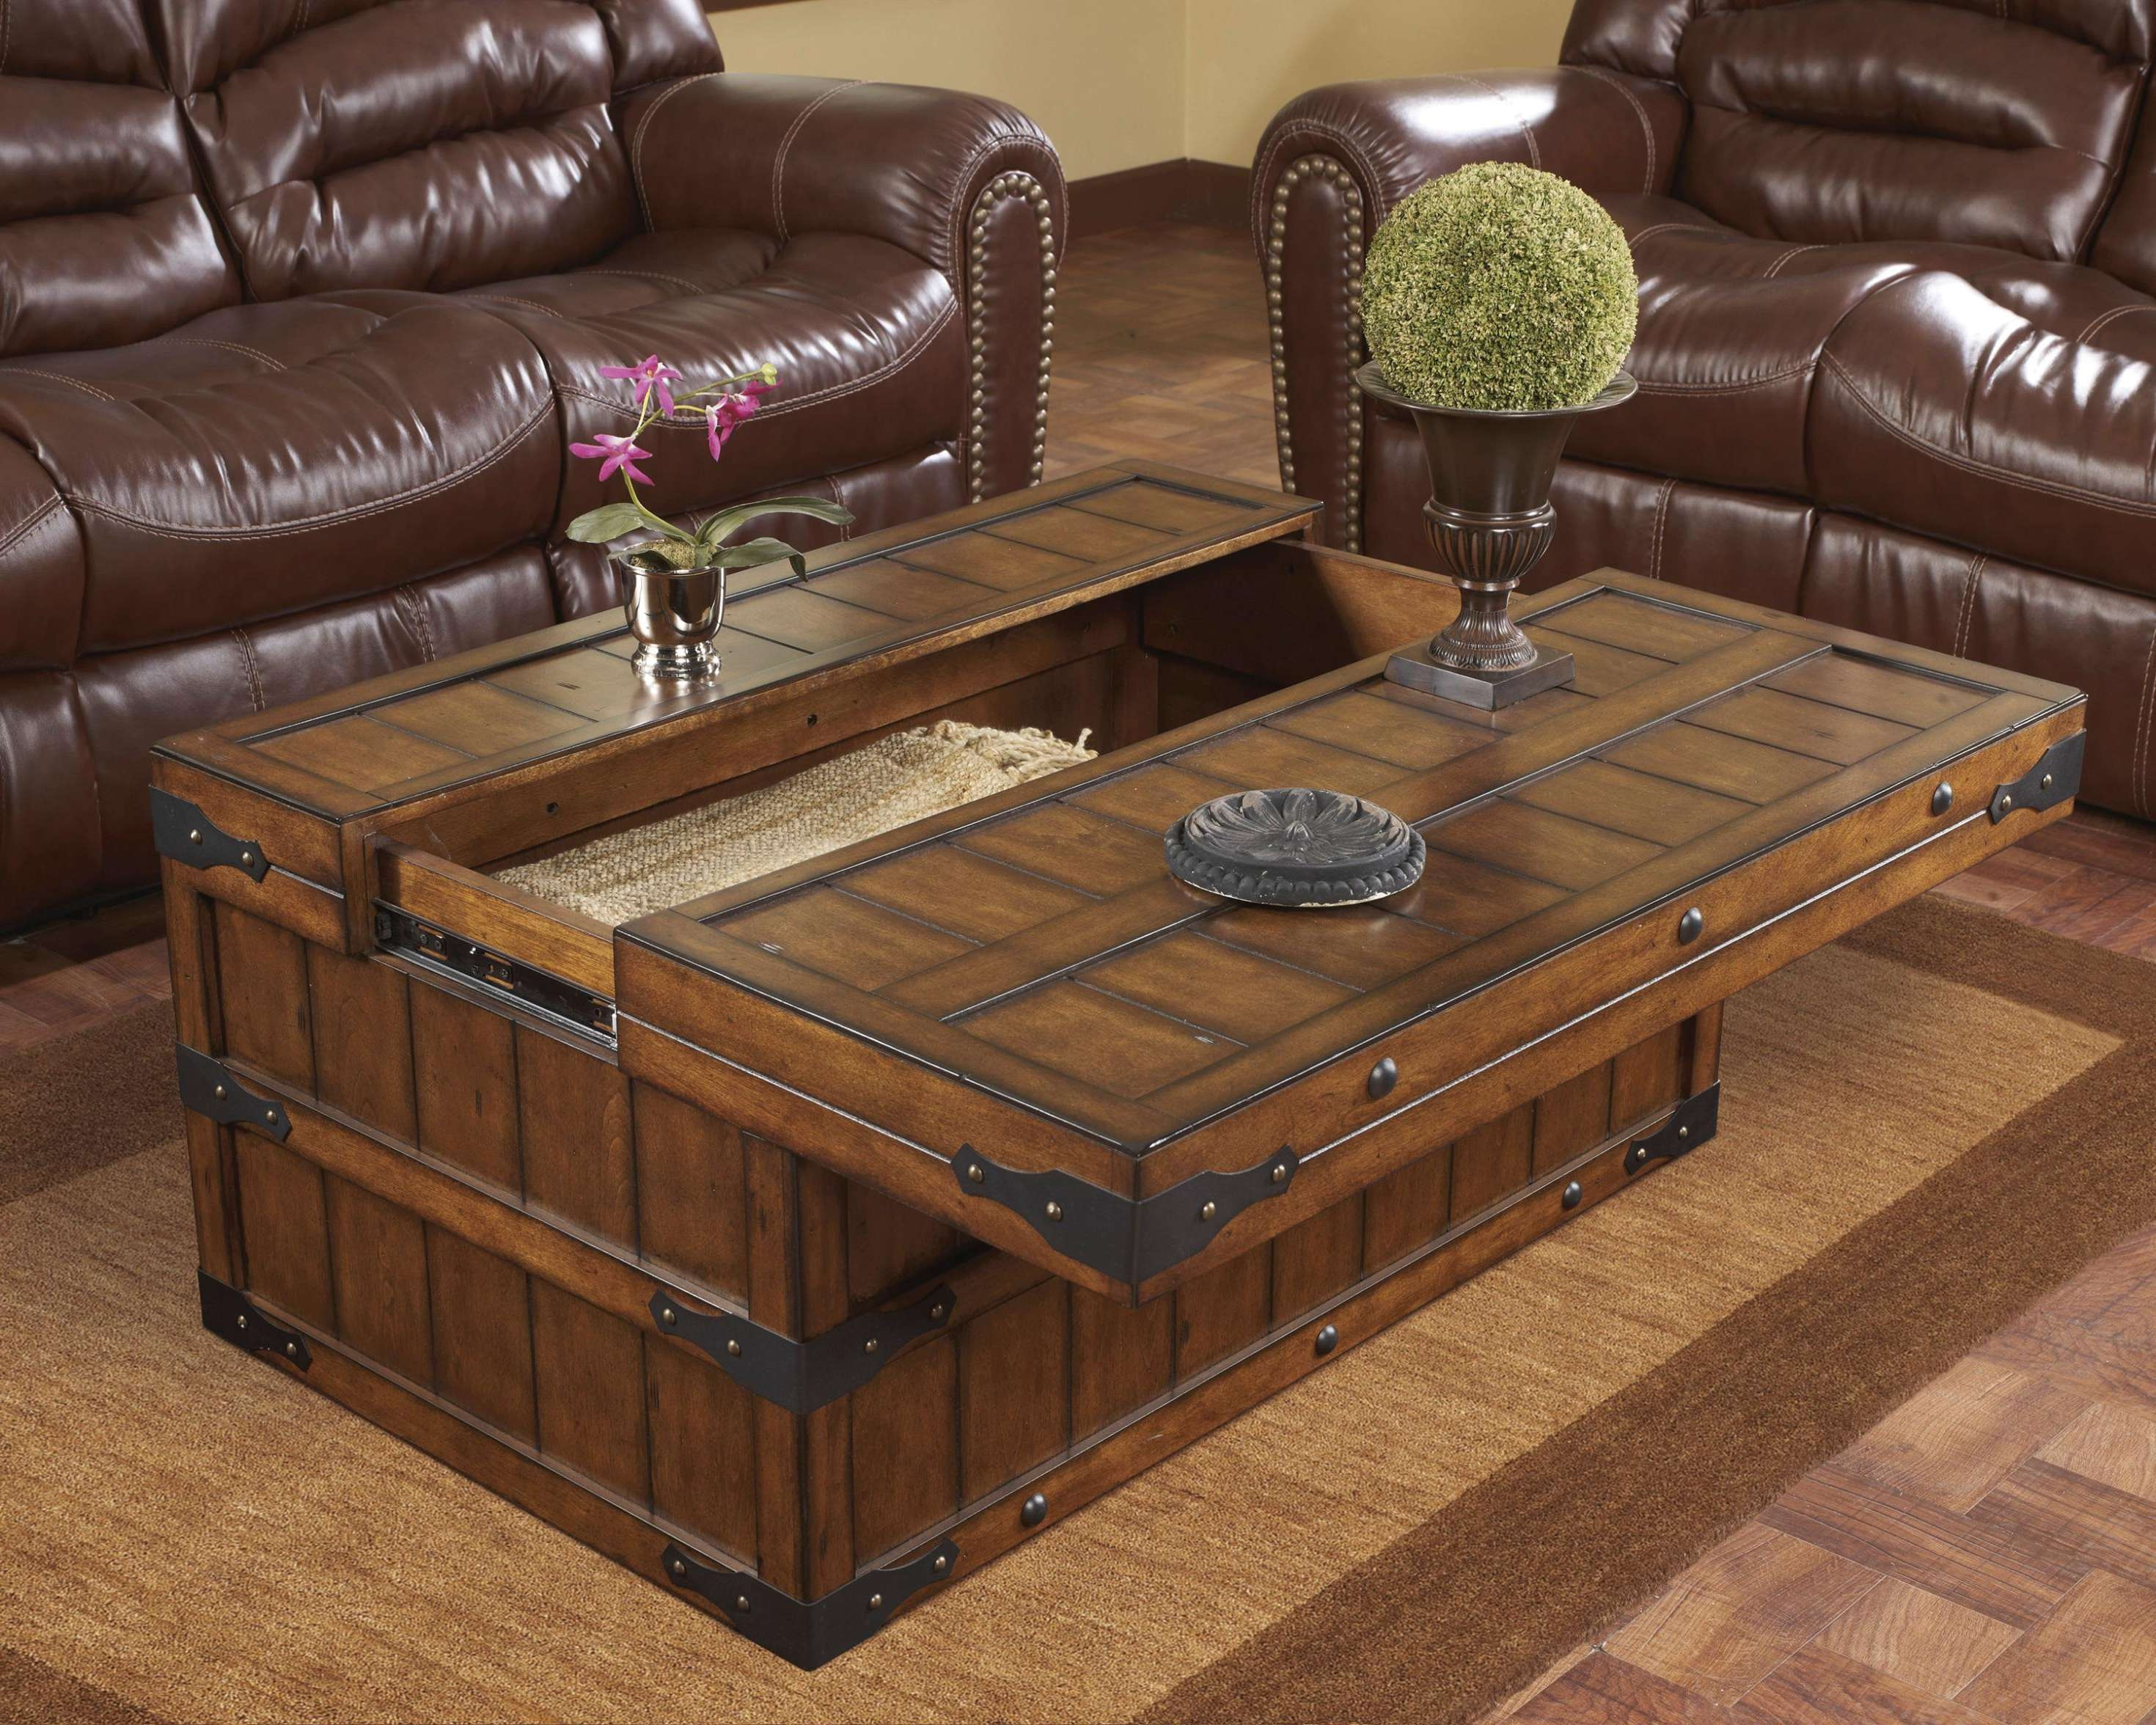 Most Recent Storage Coffee Tables Within Coffee Tables : Rustic Storage Trunk Coffee Table Trunks And (View 13 of 20)